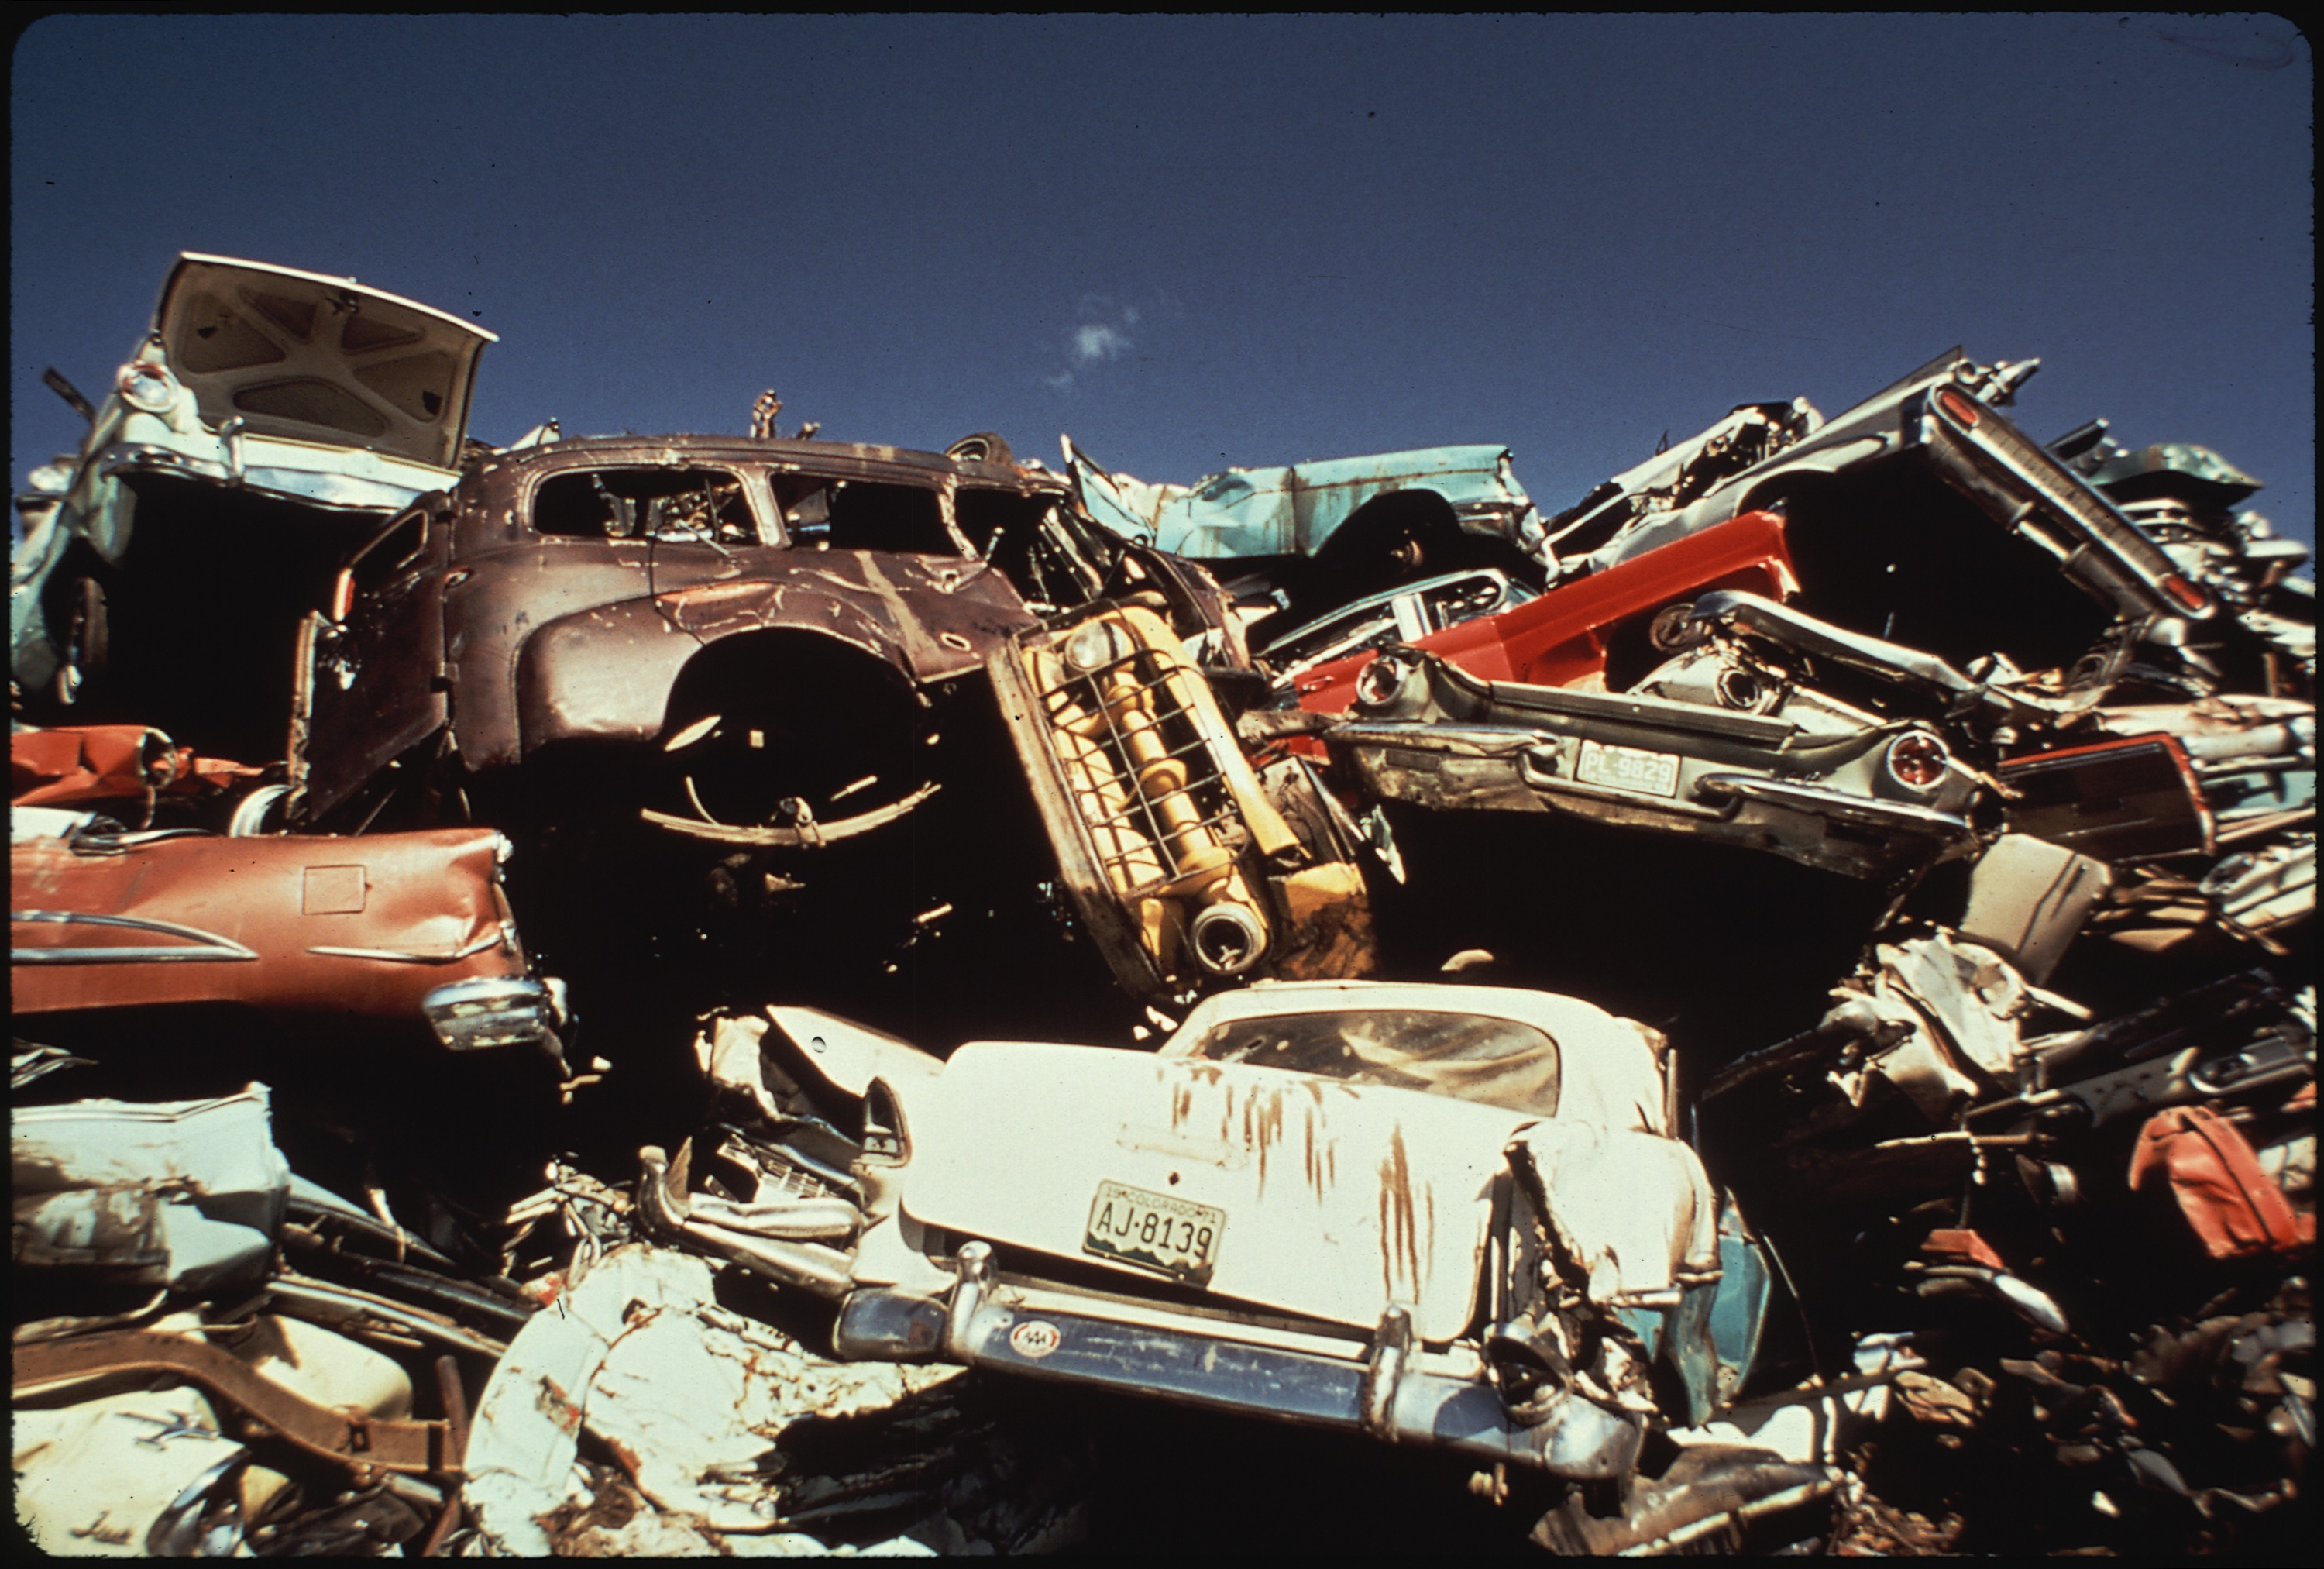 File:NATIONAL METALS JUNKYARD - NARA - 545303.jpg - Wikimedia Commons